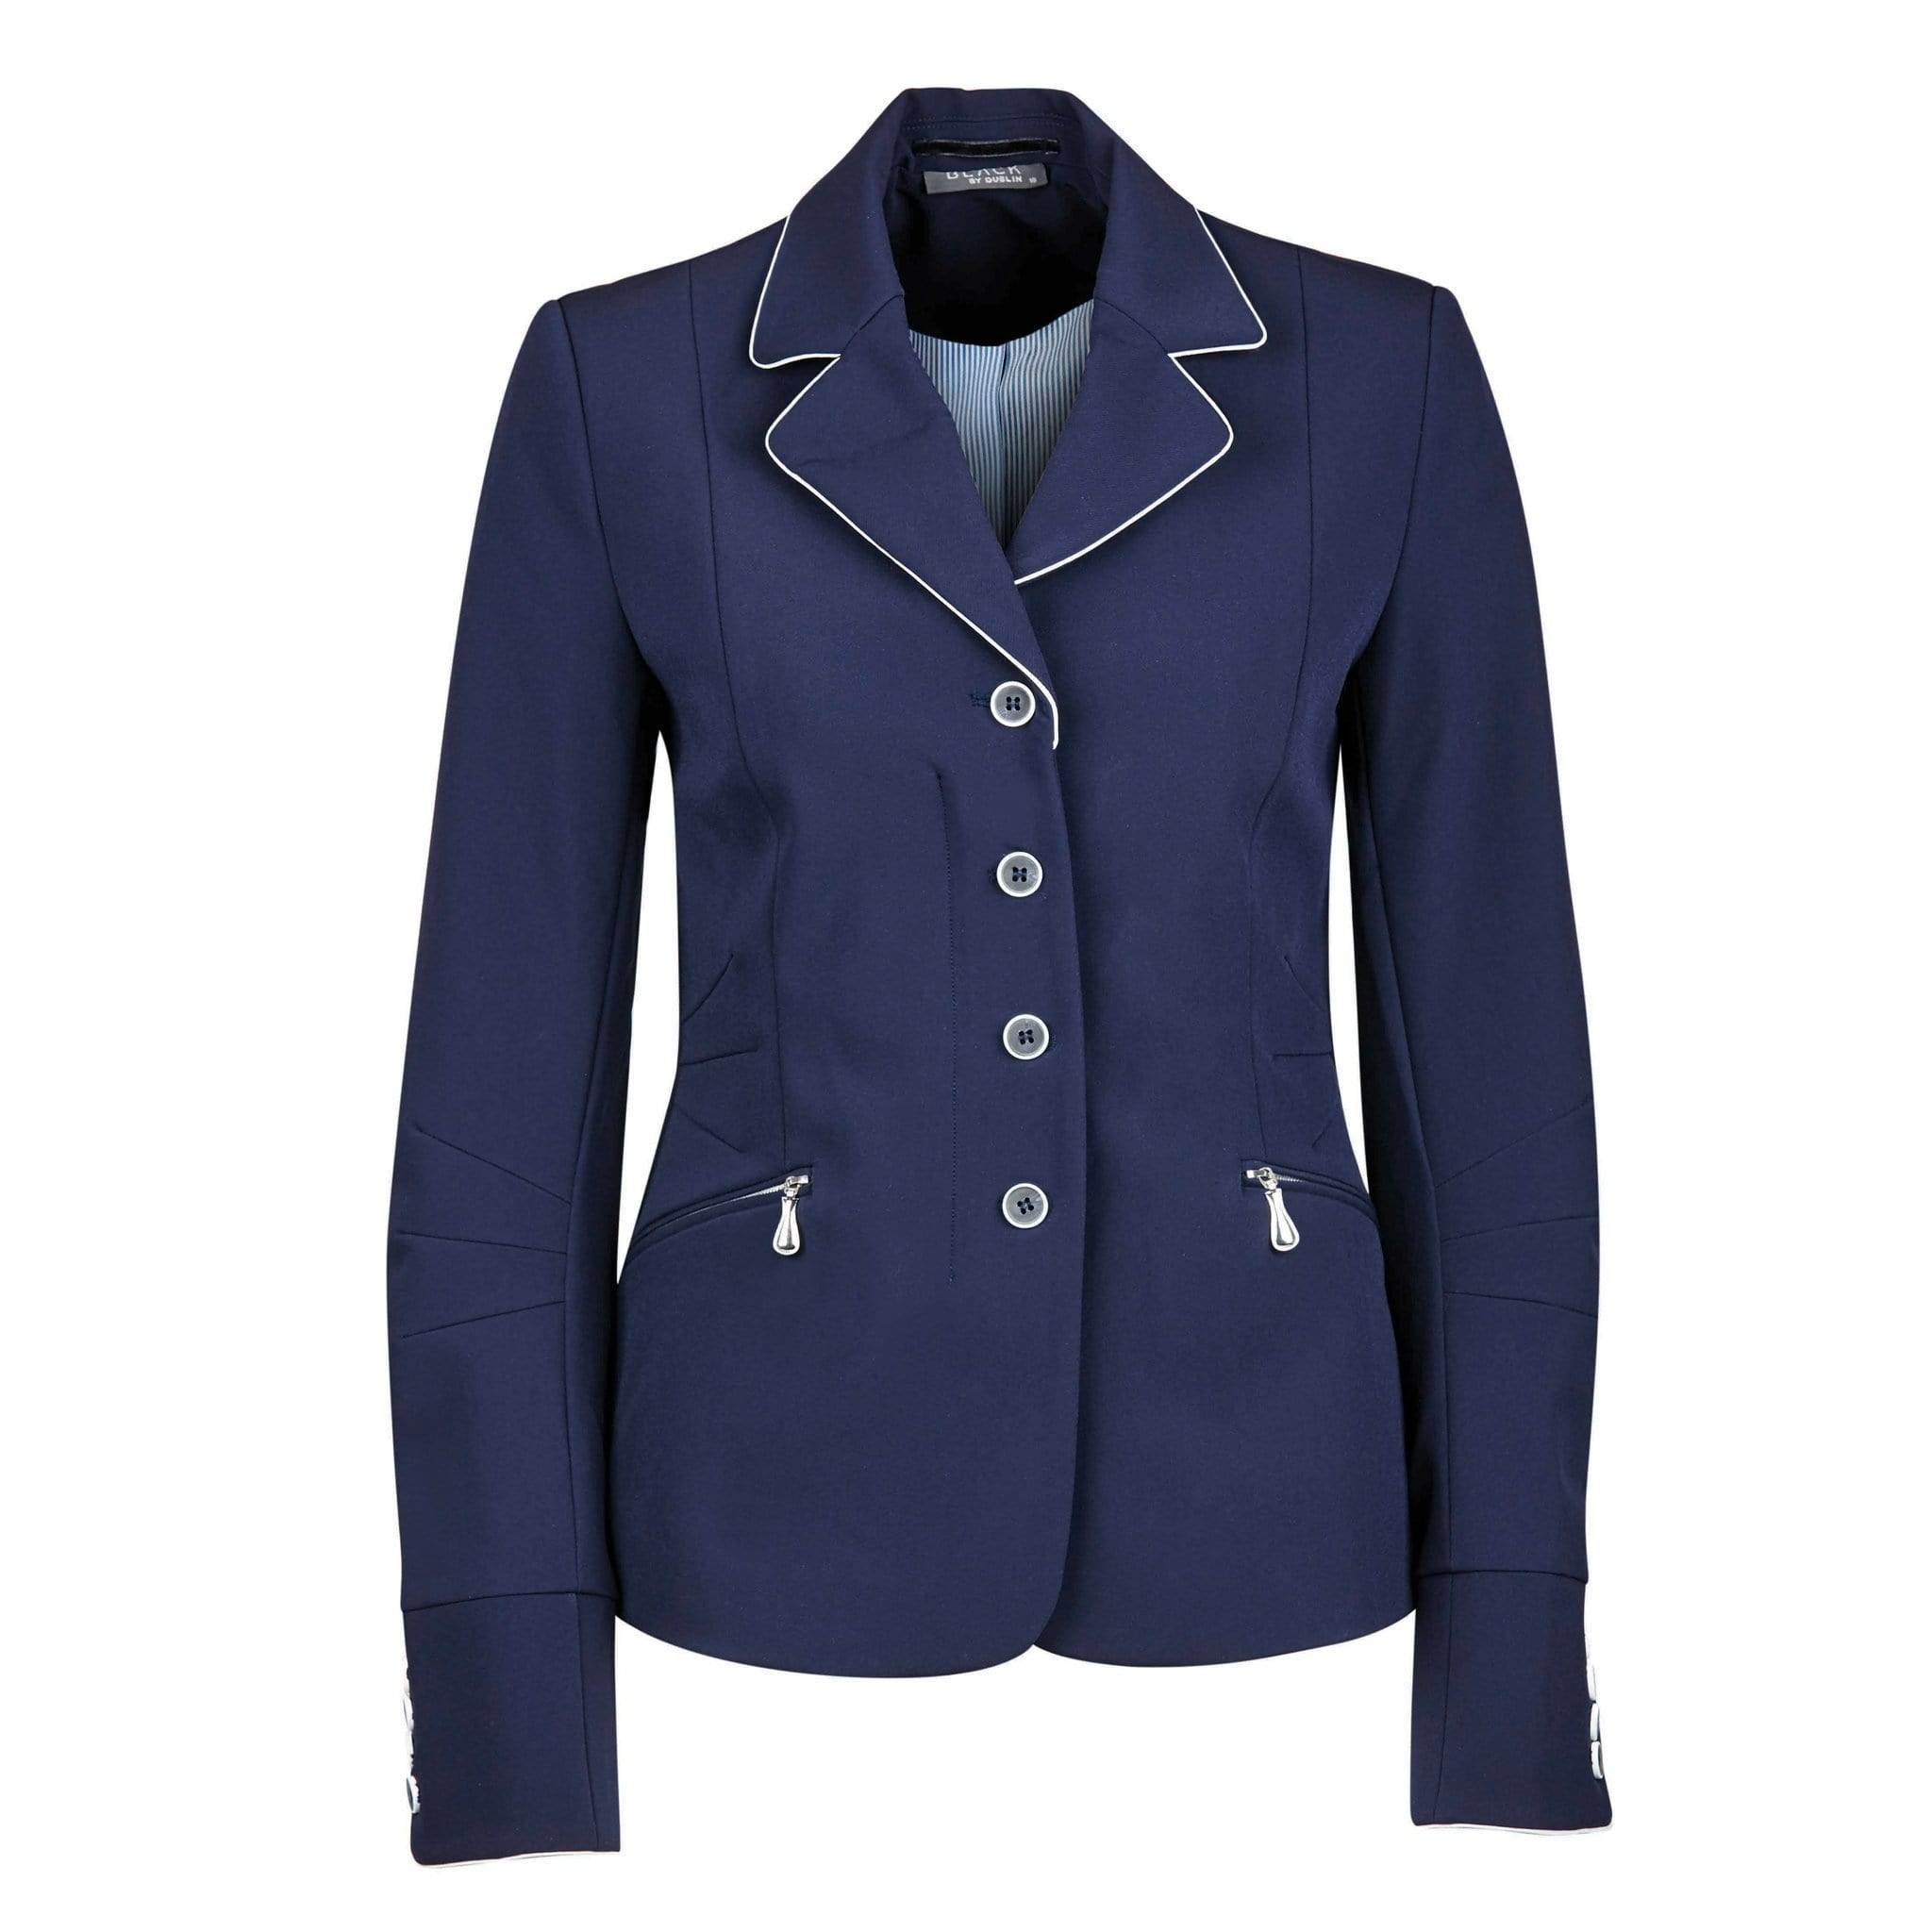 Dublin Black Diana Competition Jacket 1000557002 Navy Front